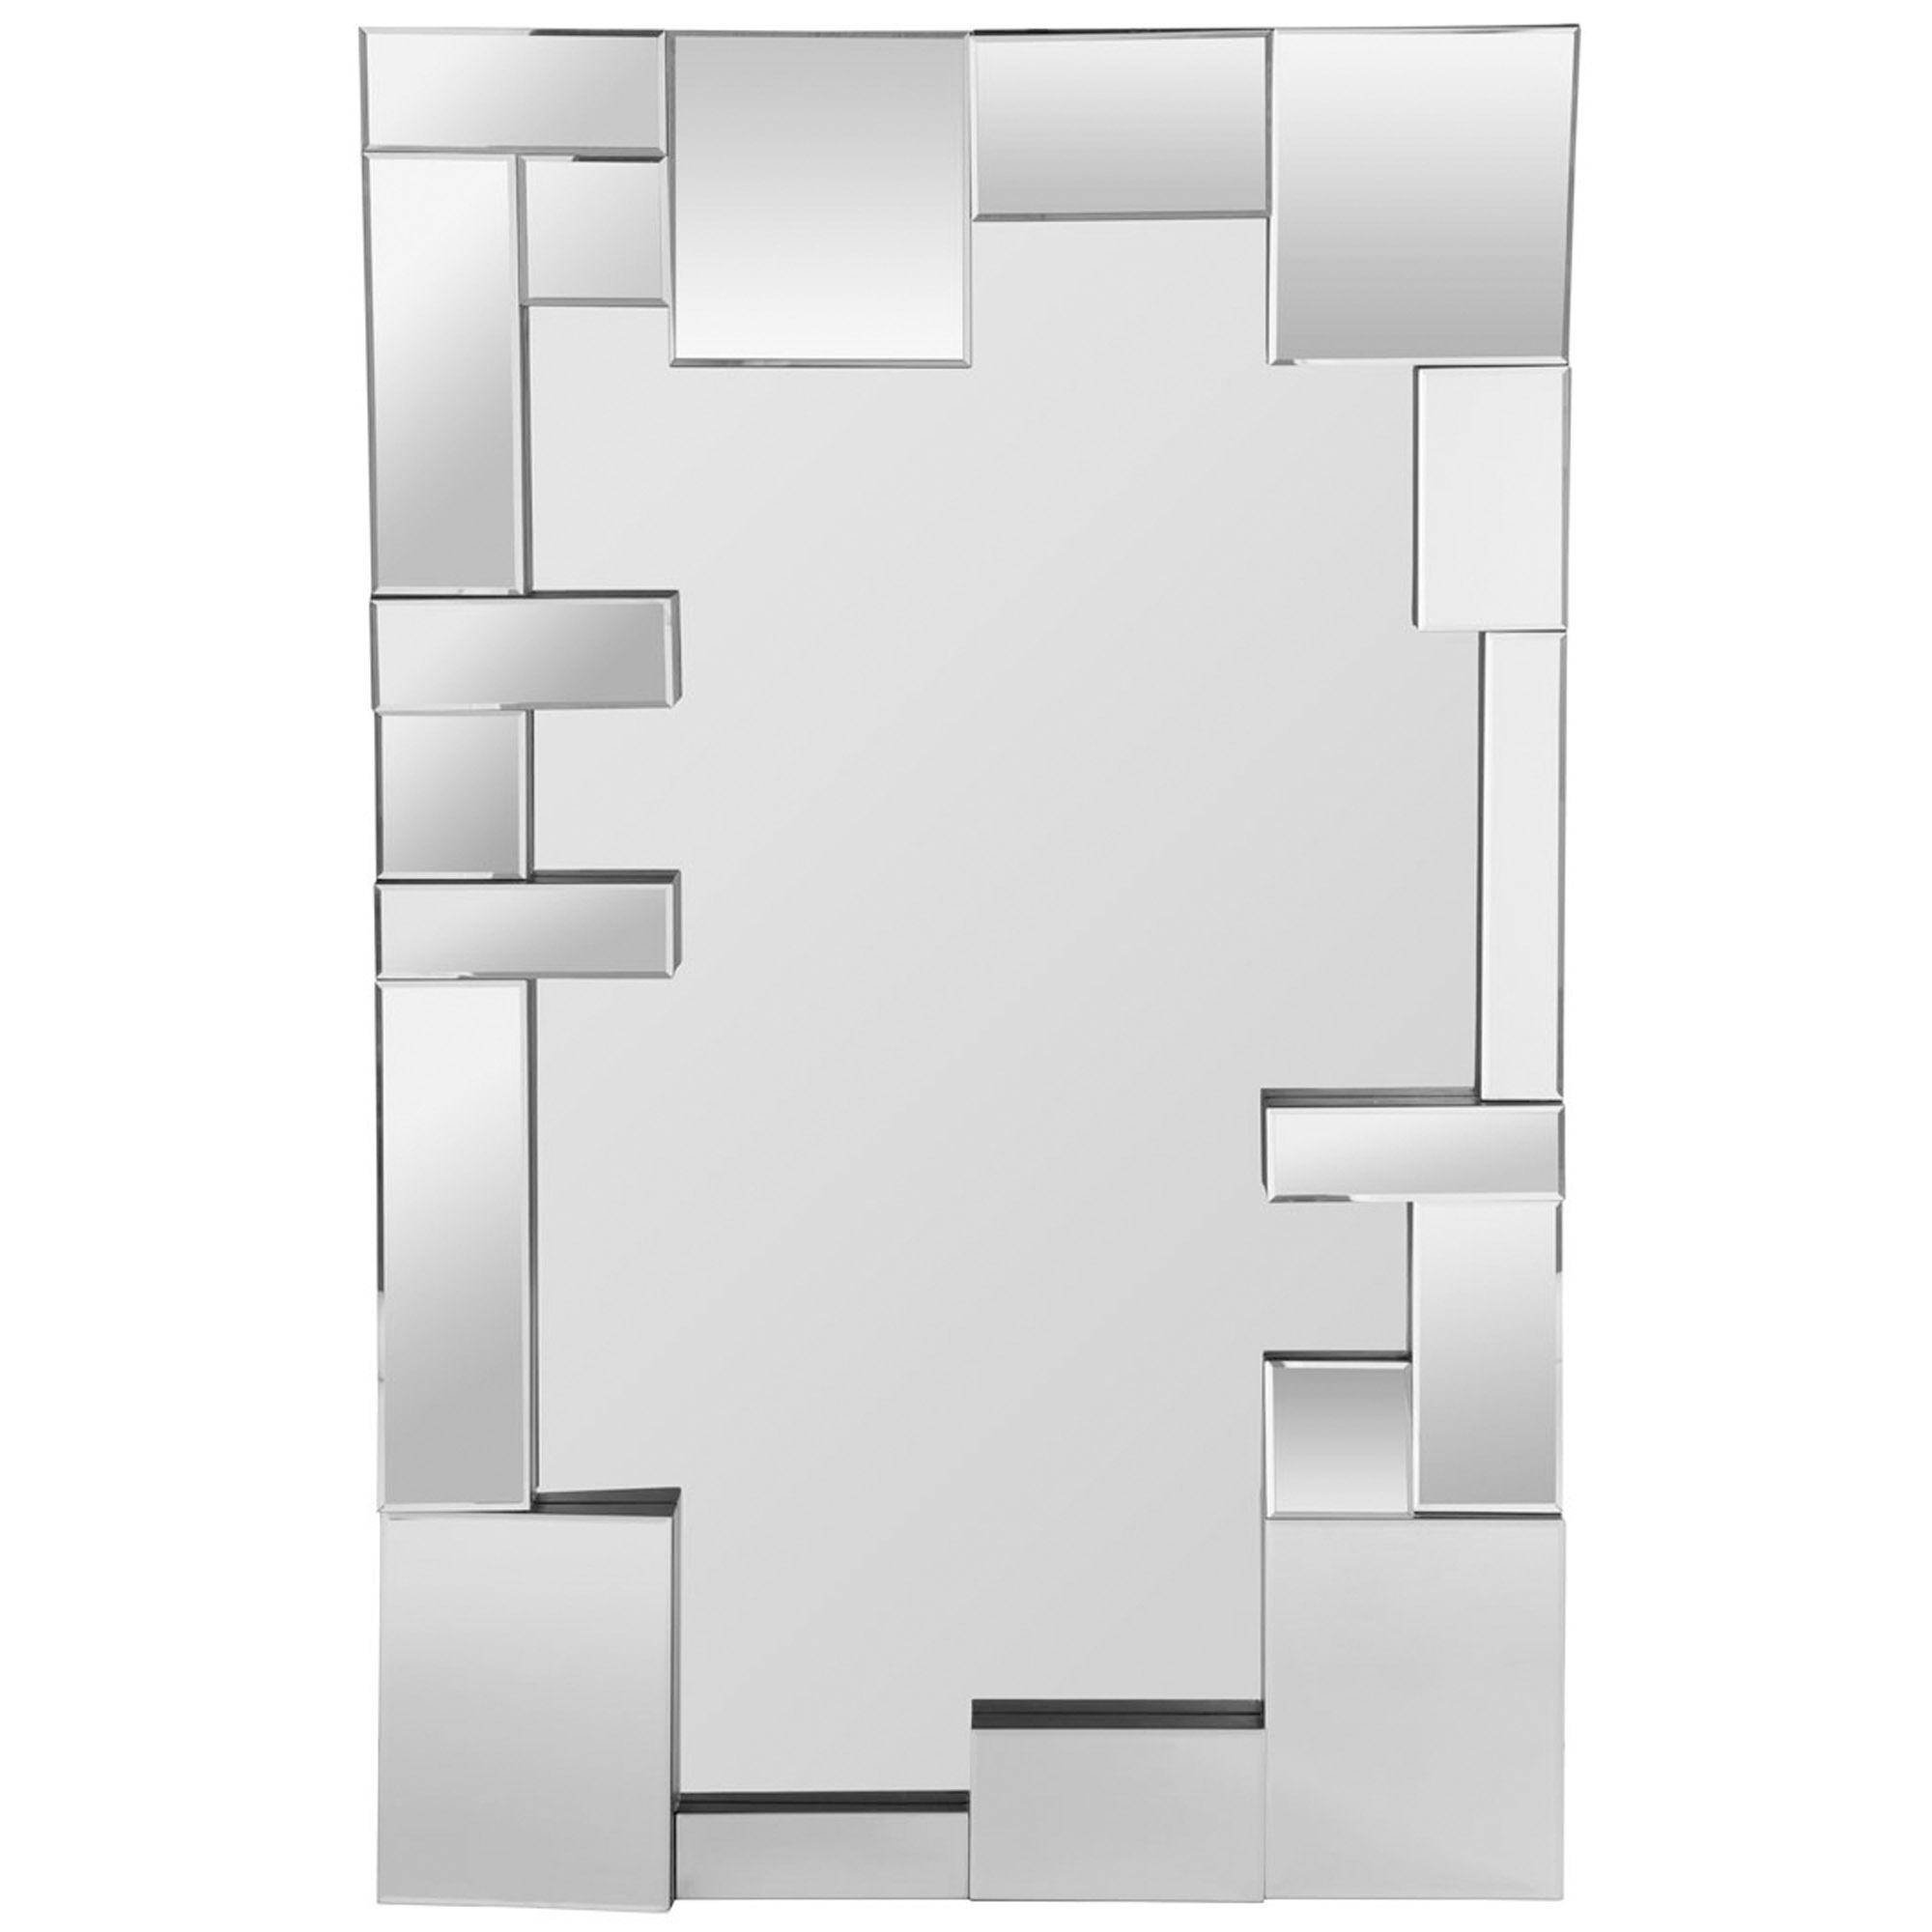 Large Abstract Wall Mirror Regarding Famous Modern Large Wall Mirrors (View 8 of 20)